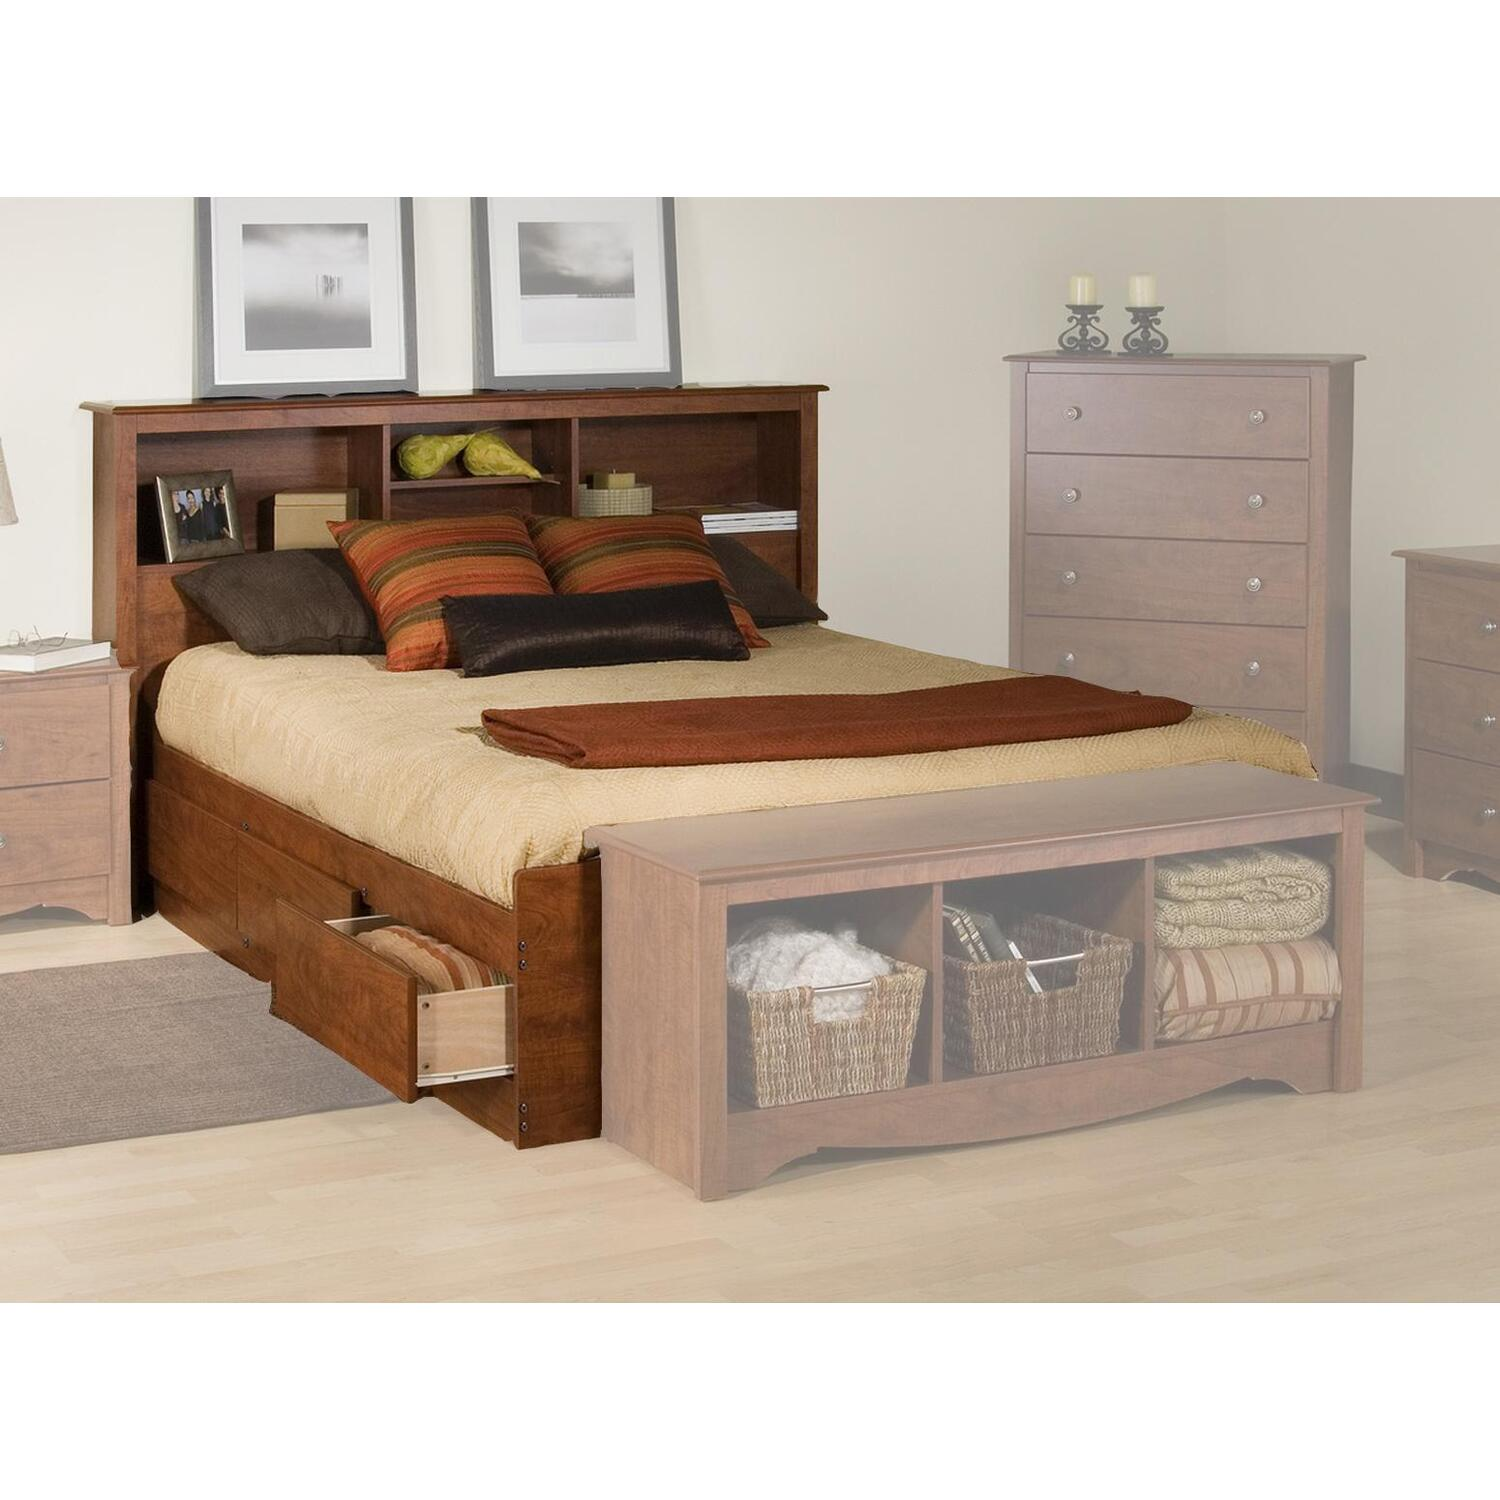 Prepac Platform Storage Bed w/ Bookcase Headboard by OJ ...